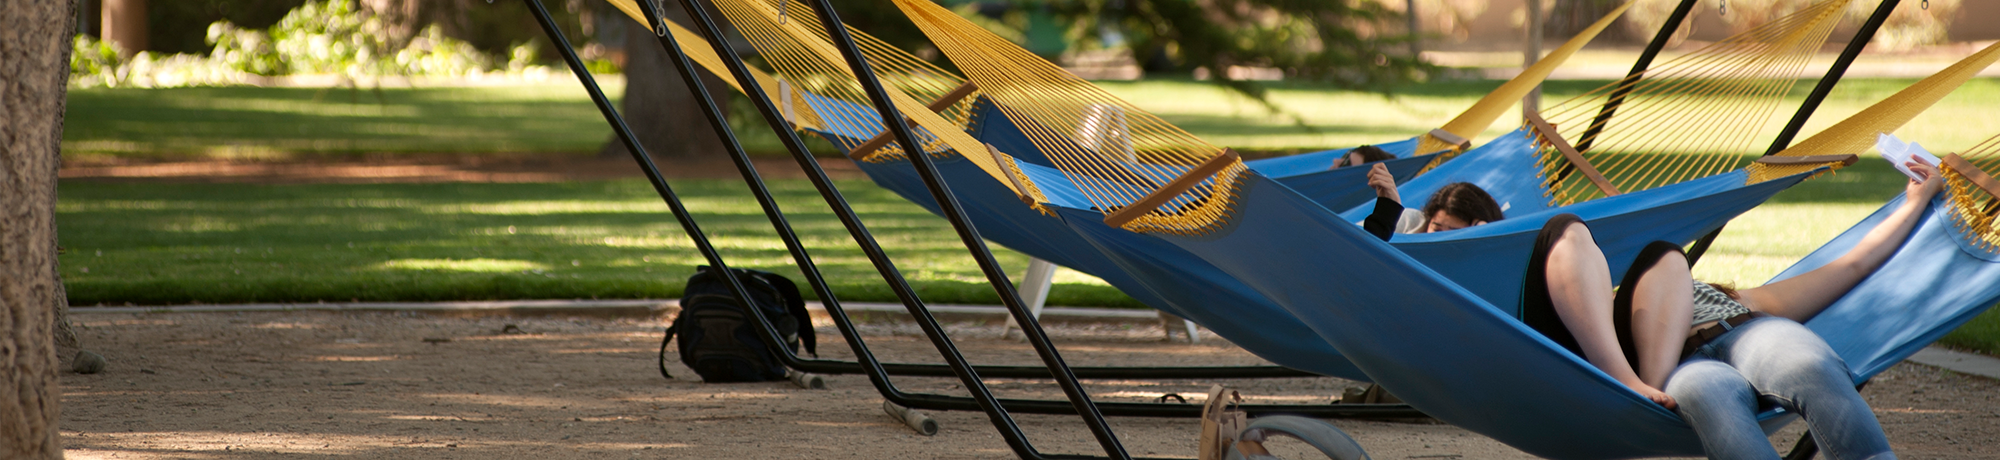 Hammocks on the Quad